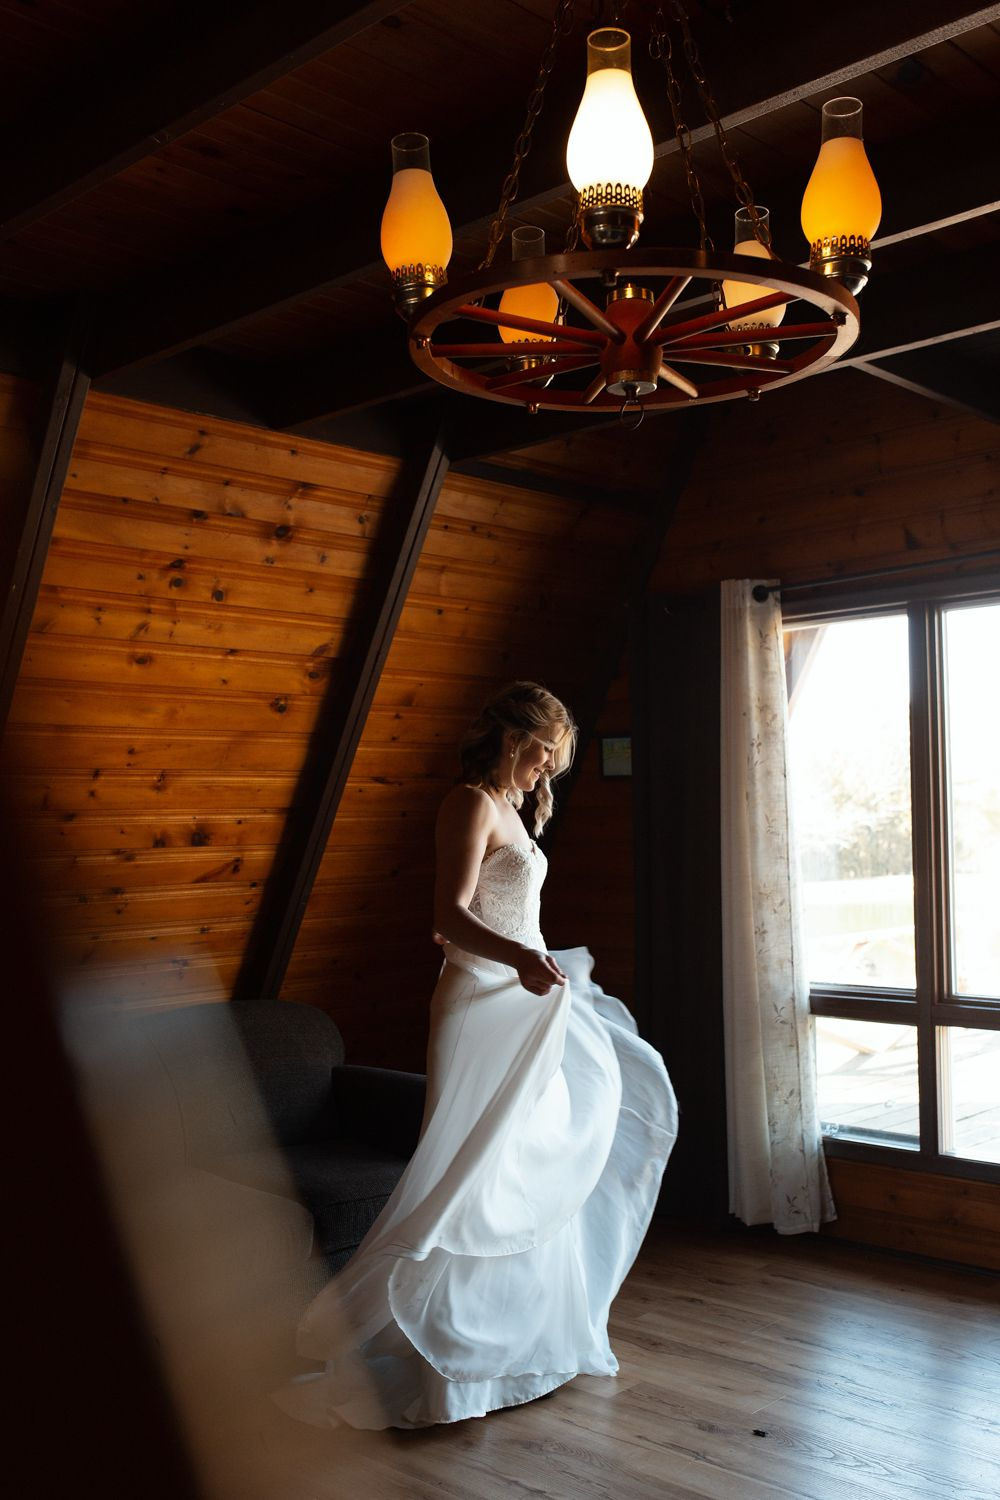 Kawartha Lakes Wedding Photographer near me Boho Wedding Bride twirling in dress